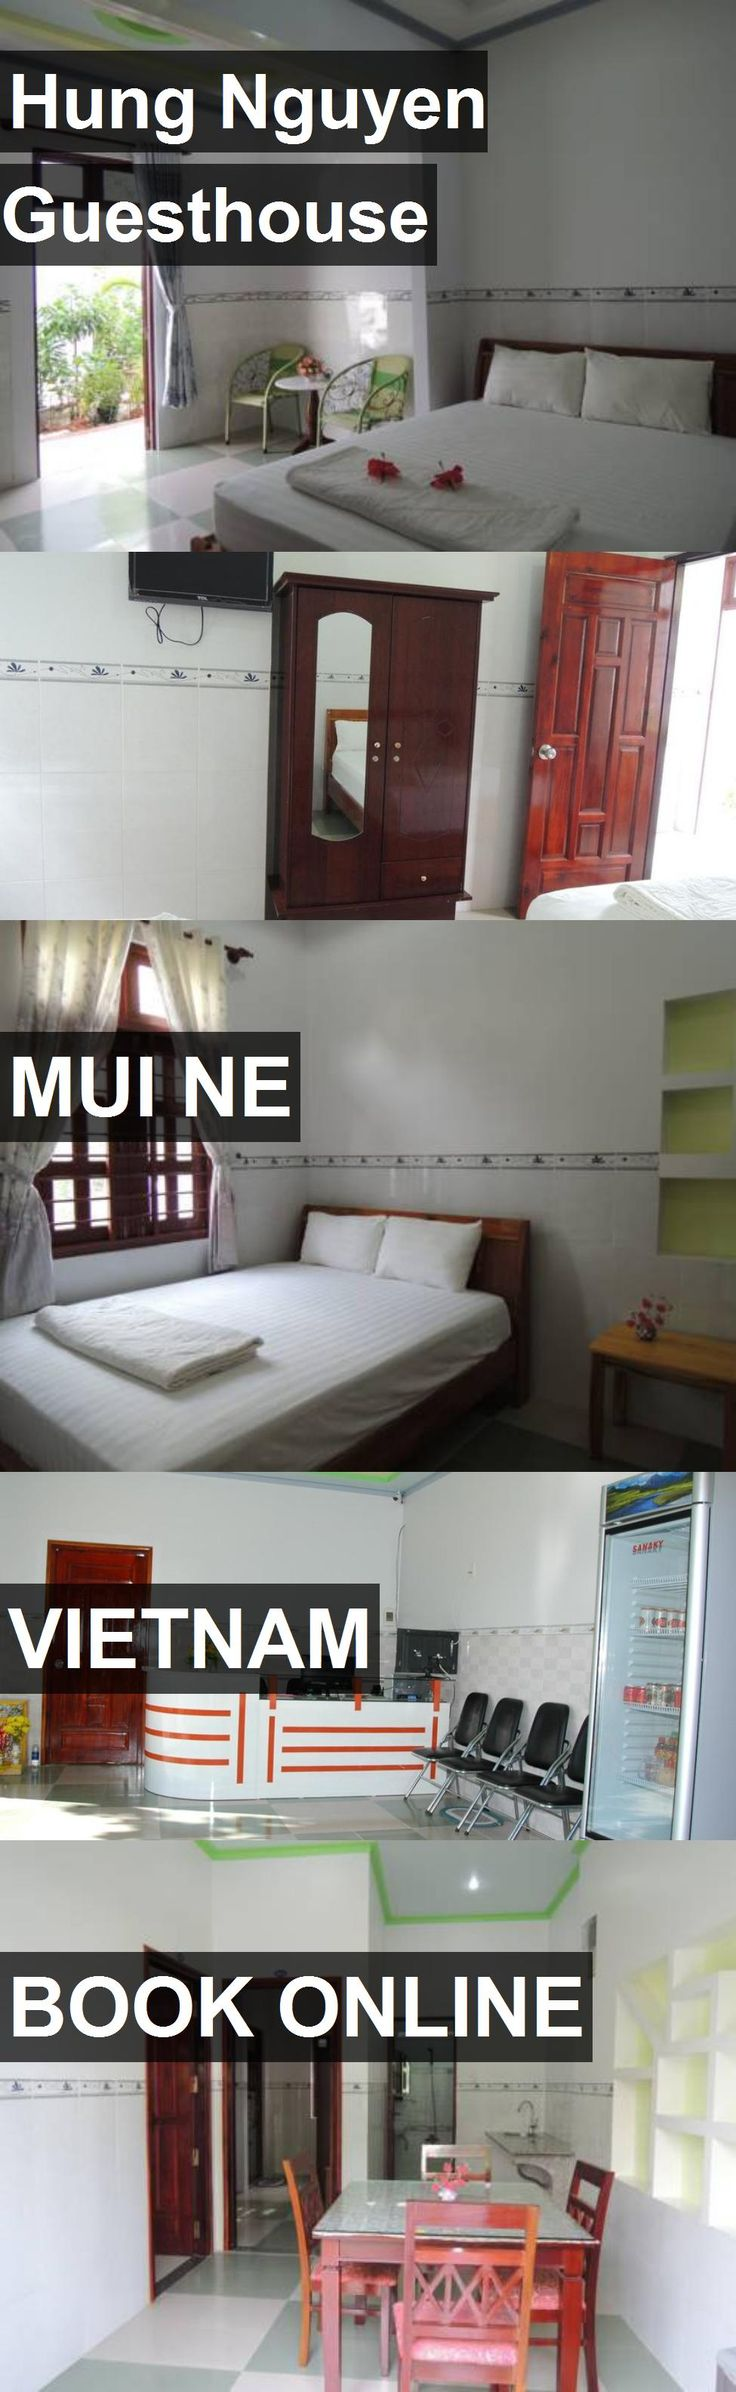 Hotel Hung Nguyen Guesthouse in Mui Ne, Vietnam. For more information, photos, reviews and best prices please follow the link. #Vietnam #MuiNe #travel #vacation #hotel